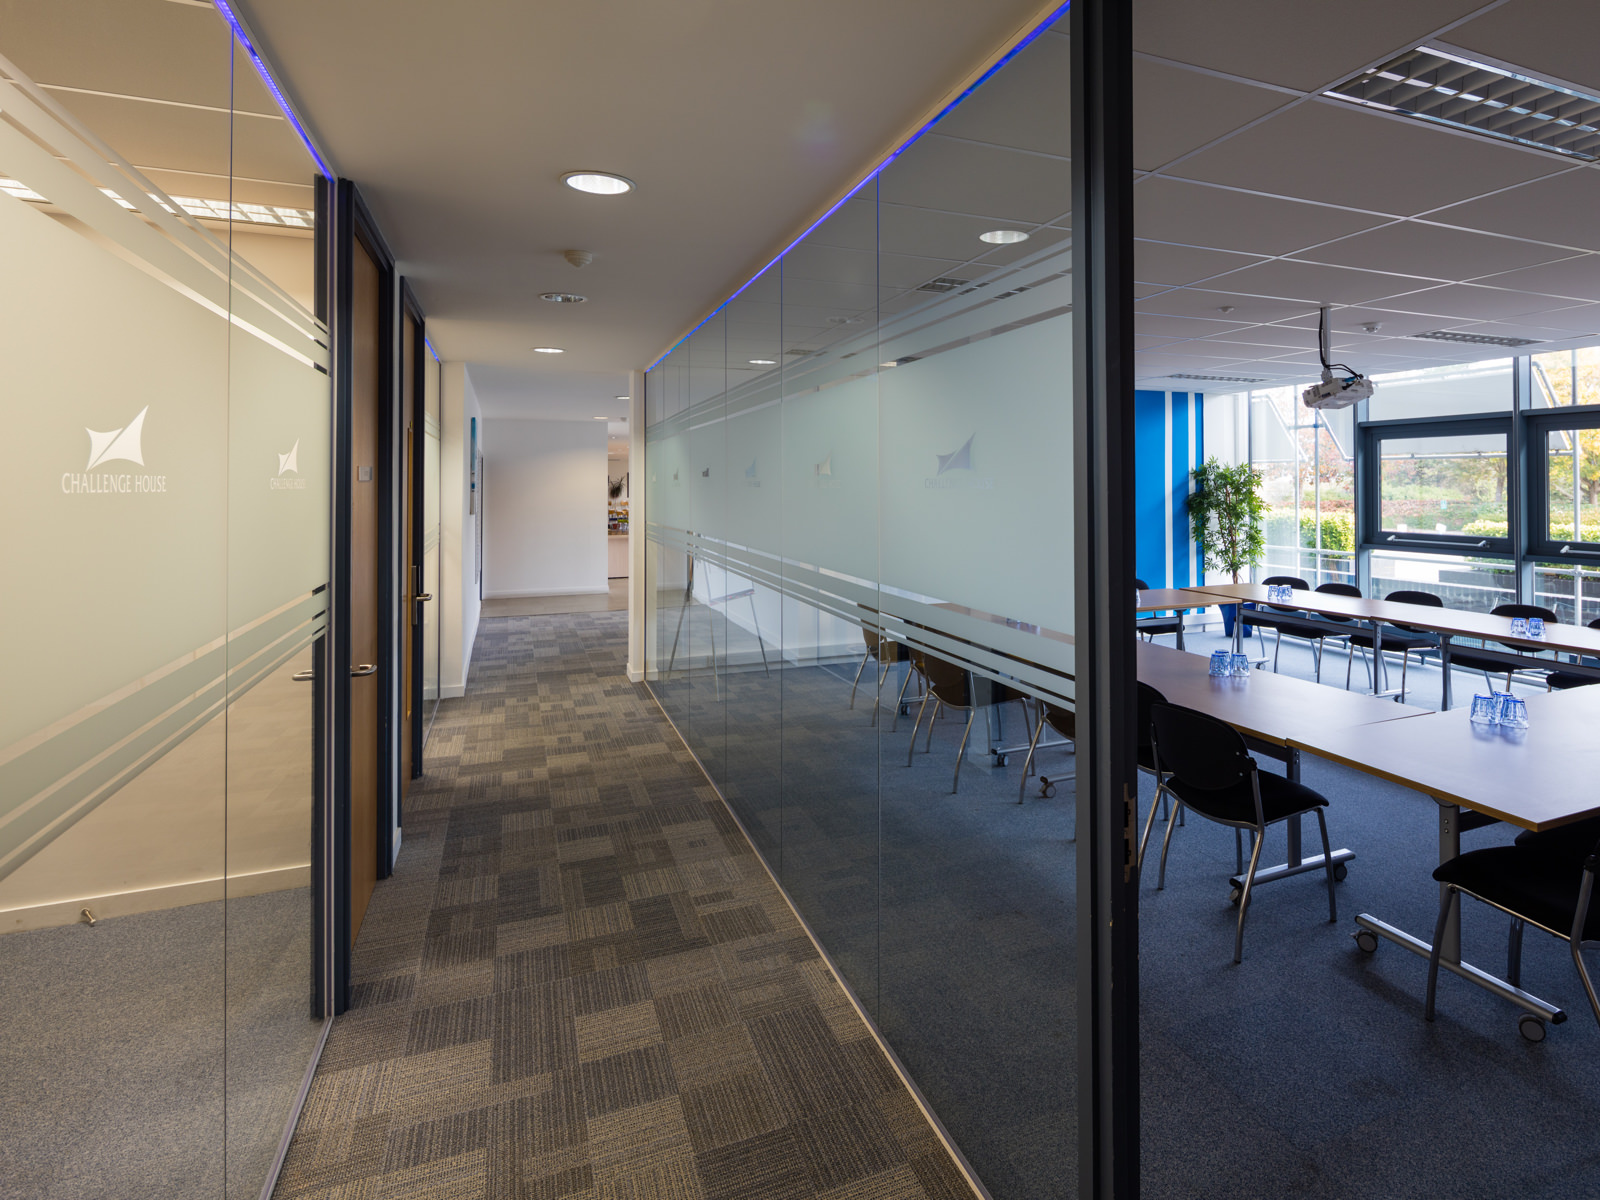 Making Space, Work. - We are passionate about providing amazing workspaces for clients. Whether you choose an office in one of our business centres or ask us to find, and fit-out, your own leased space, we can provide you with a fully-serviced office leaving you to focus on running your business.